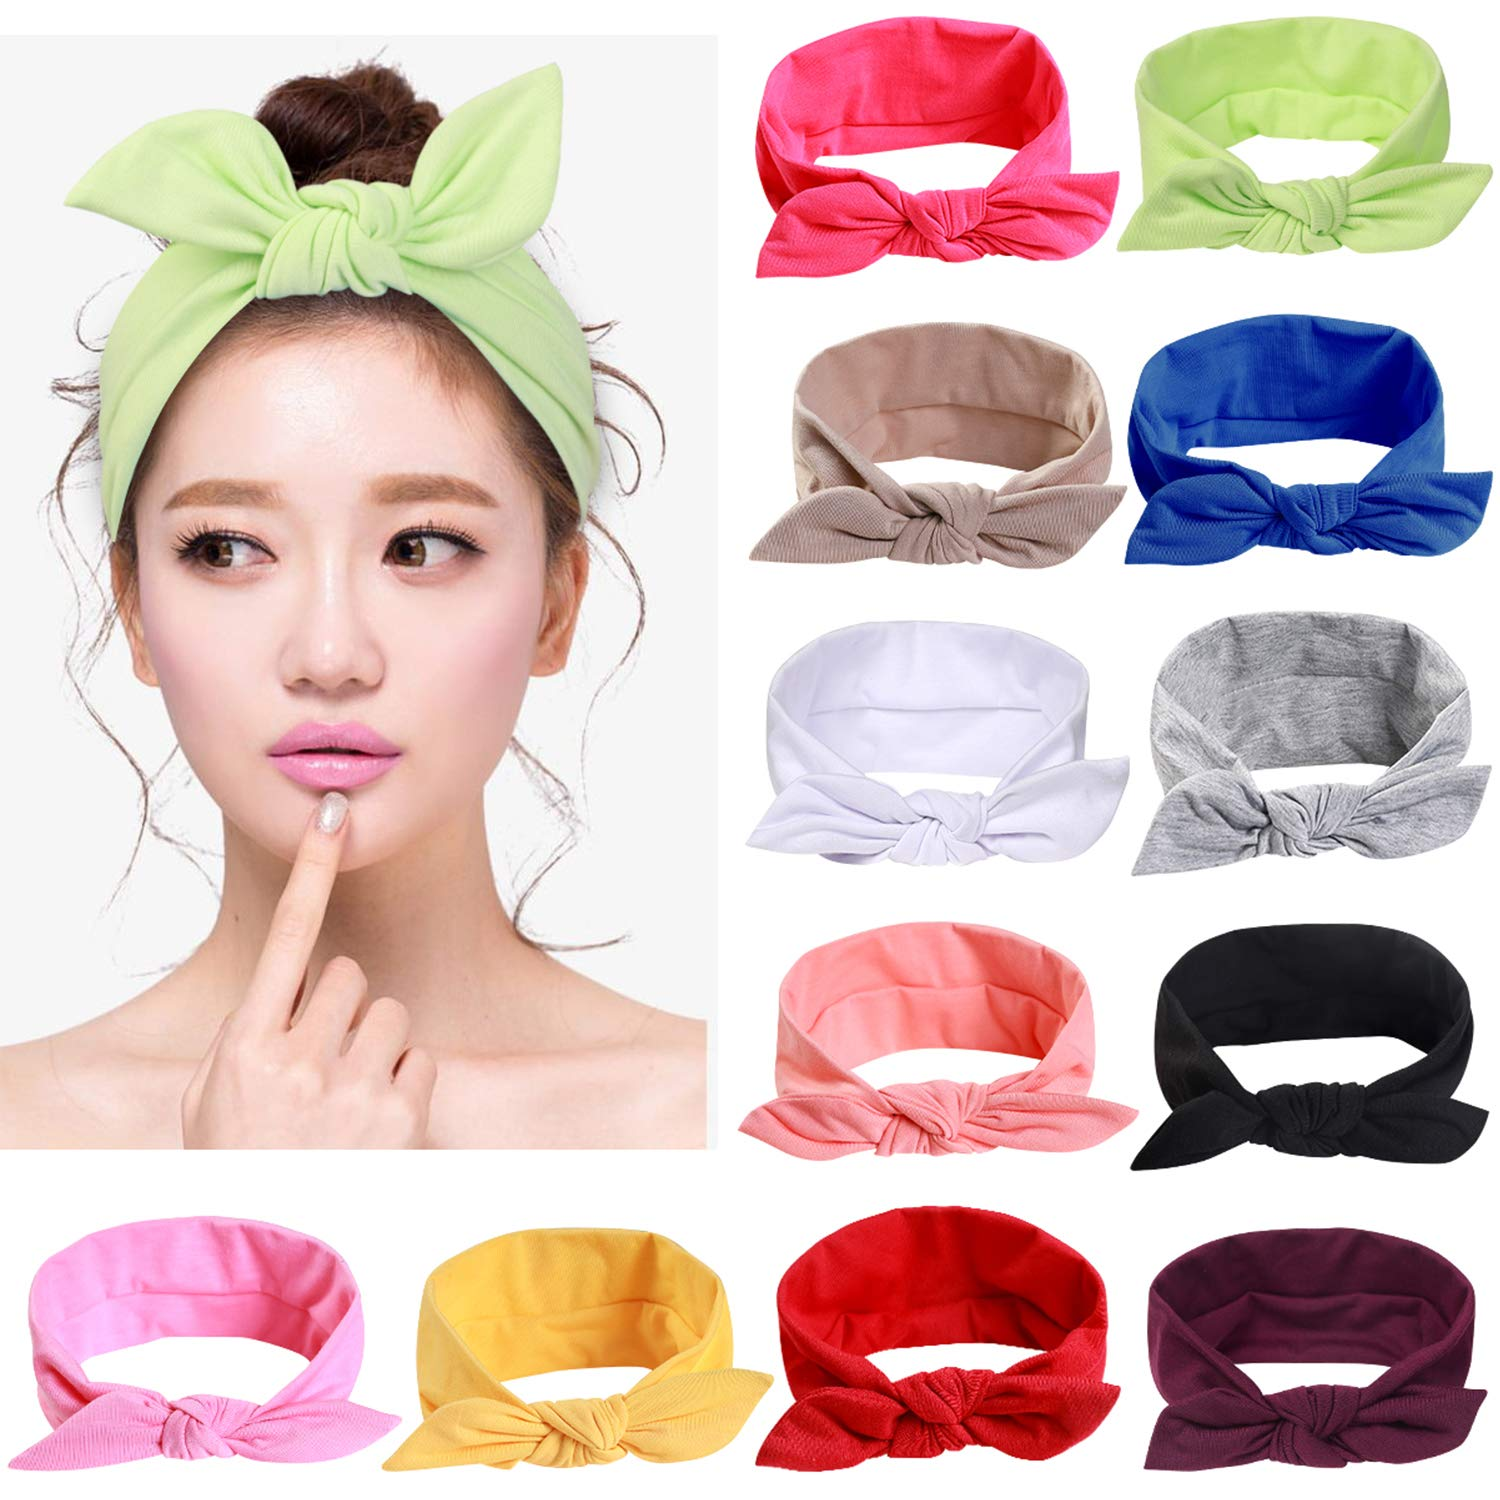 12pcs Solid Color Women Headbands Headwraps Hair Band Cotton Stretchy Turban Bows Accessories for Women Fashion Sport: Beauty